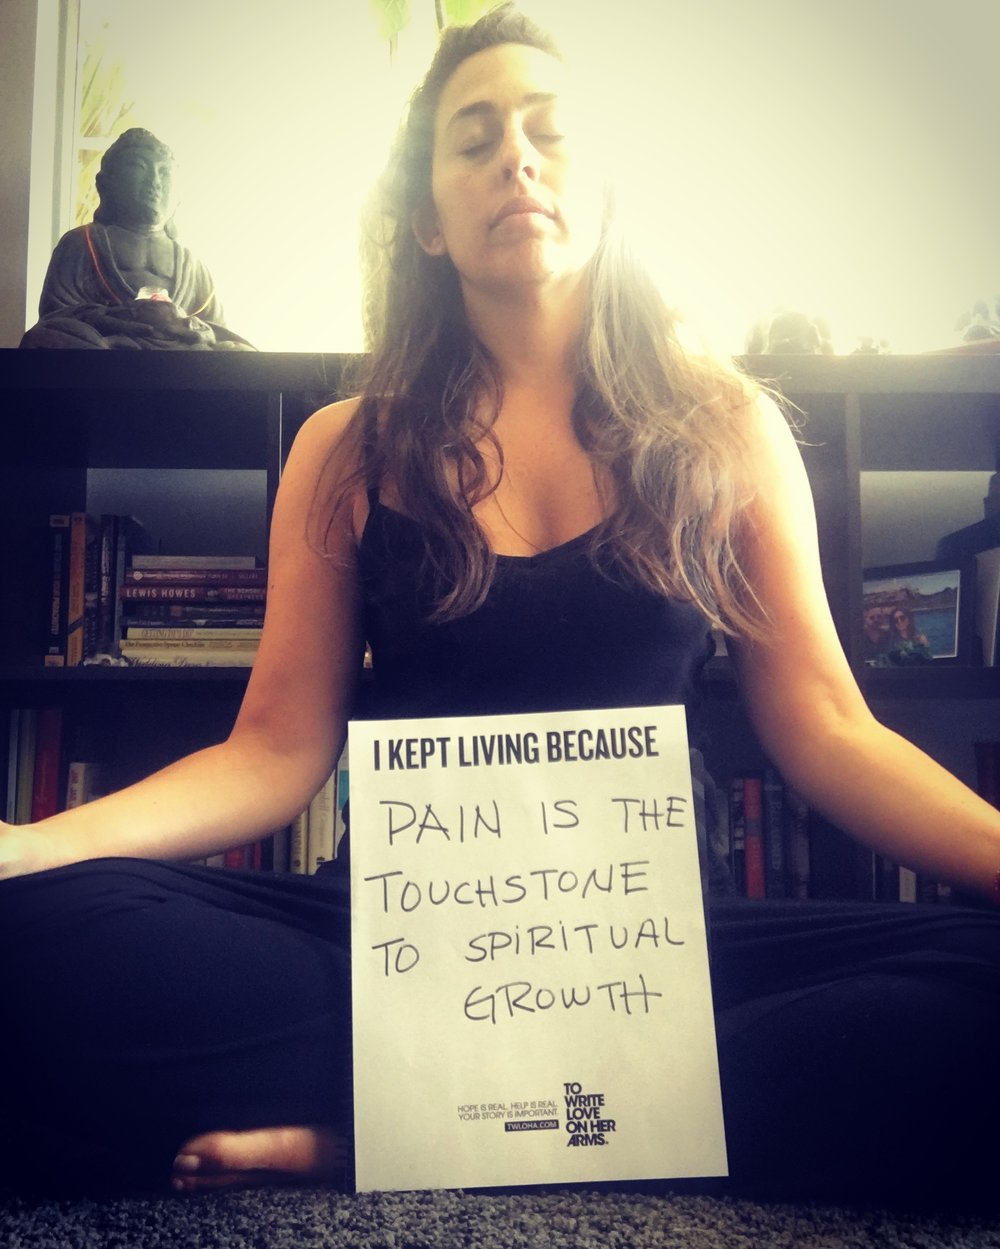 Joining hundreds on Instagram this week in support of suicide prevention. #TWLOHA.